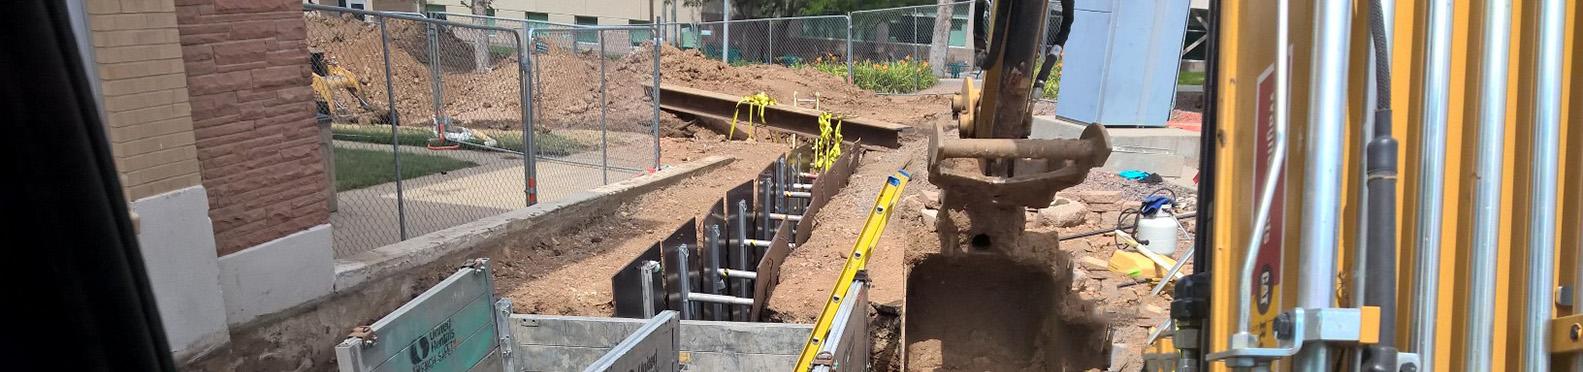 Colorado School of Mines Steam Line Repair